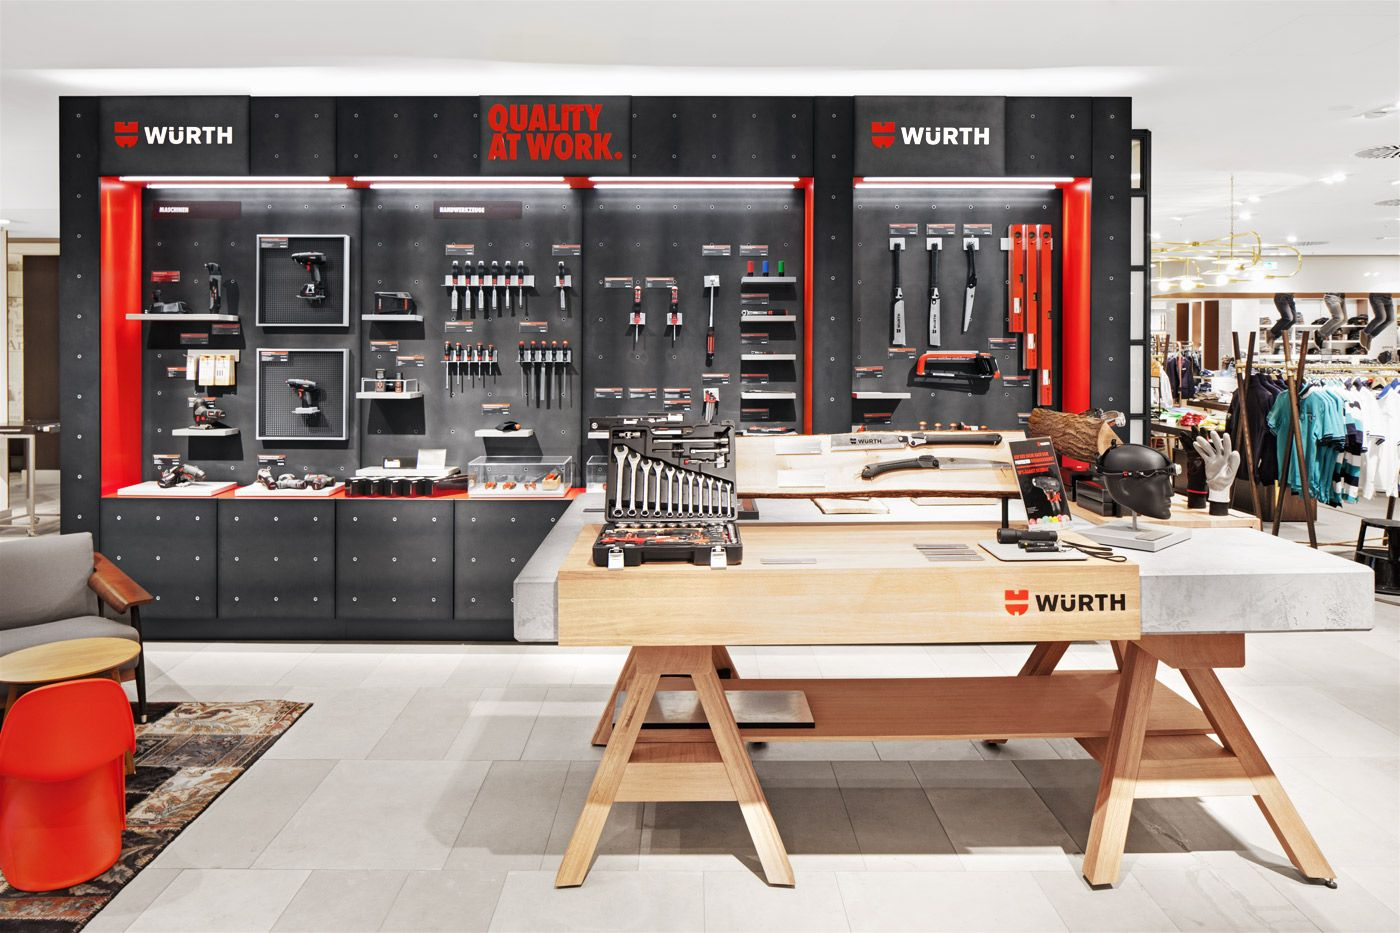 With the opening of the first temporary brand store at